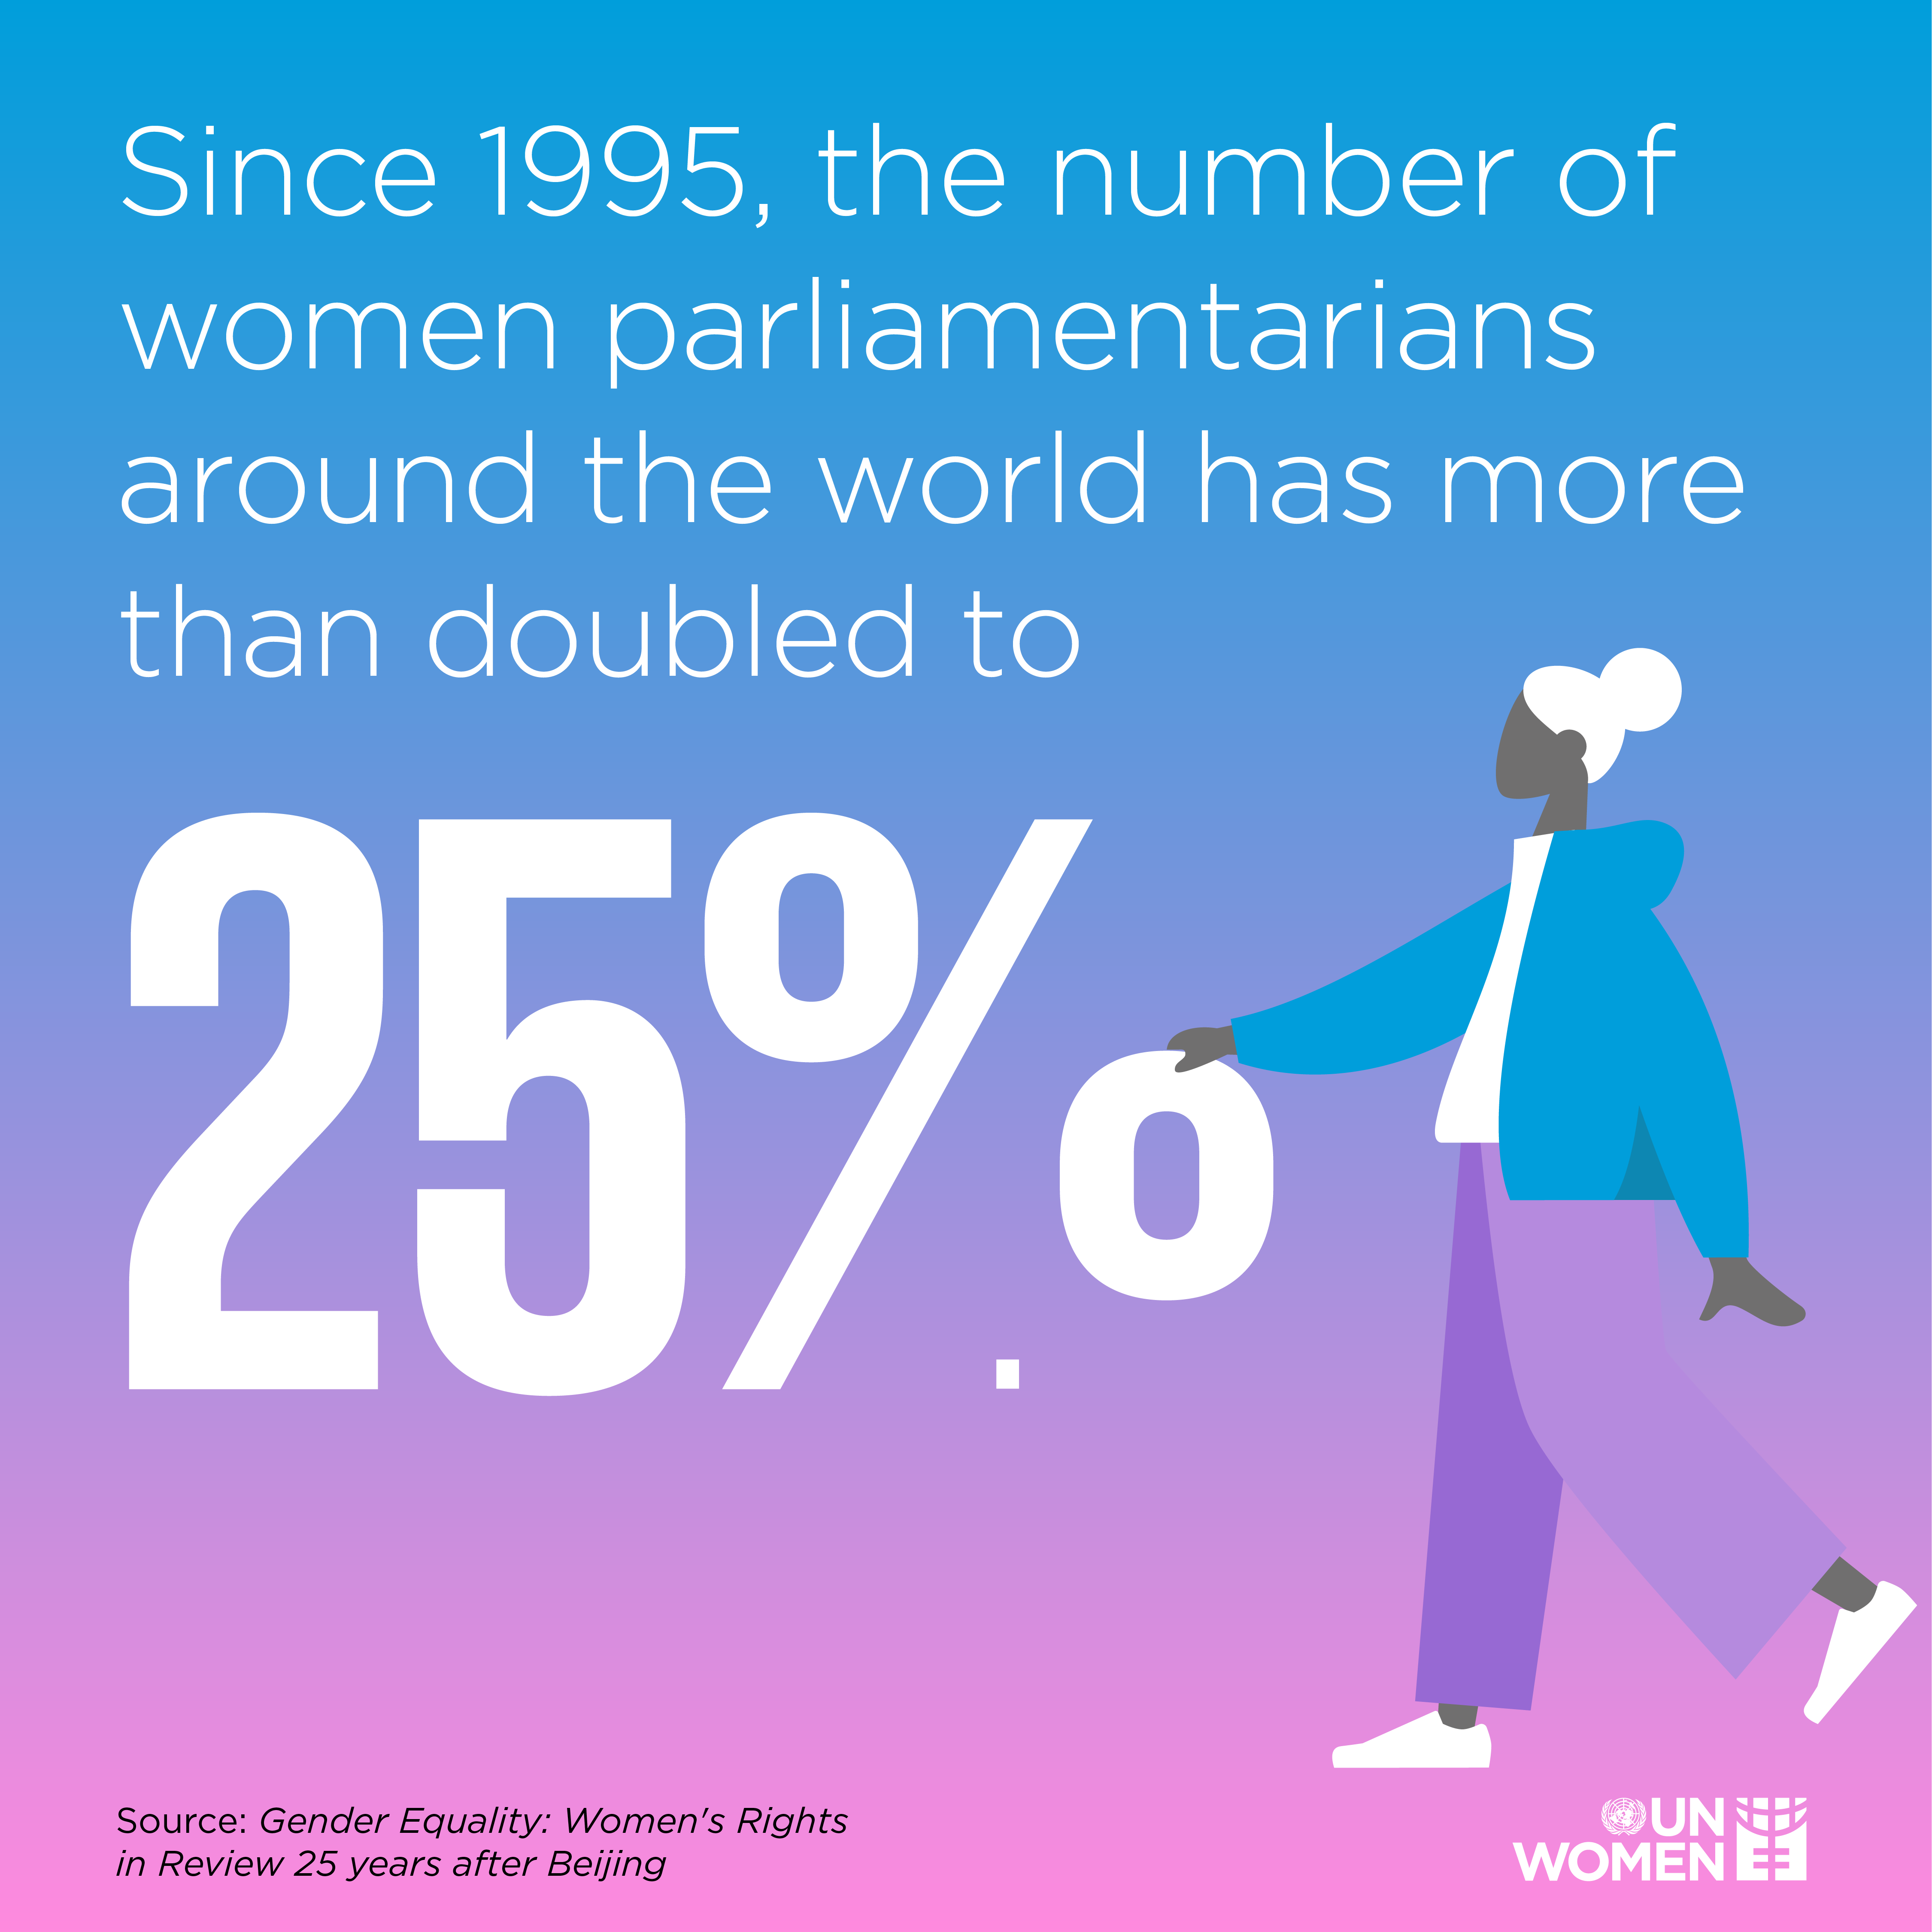 Since 1995, the number of women parliamentarians around the world has more than doubled to 25%